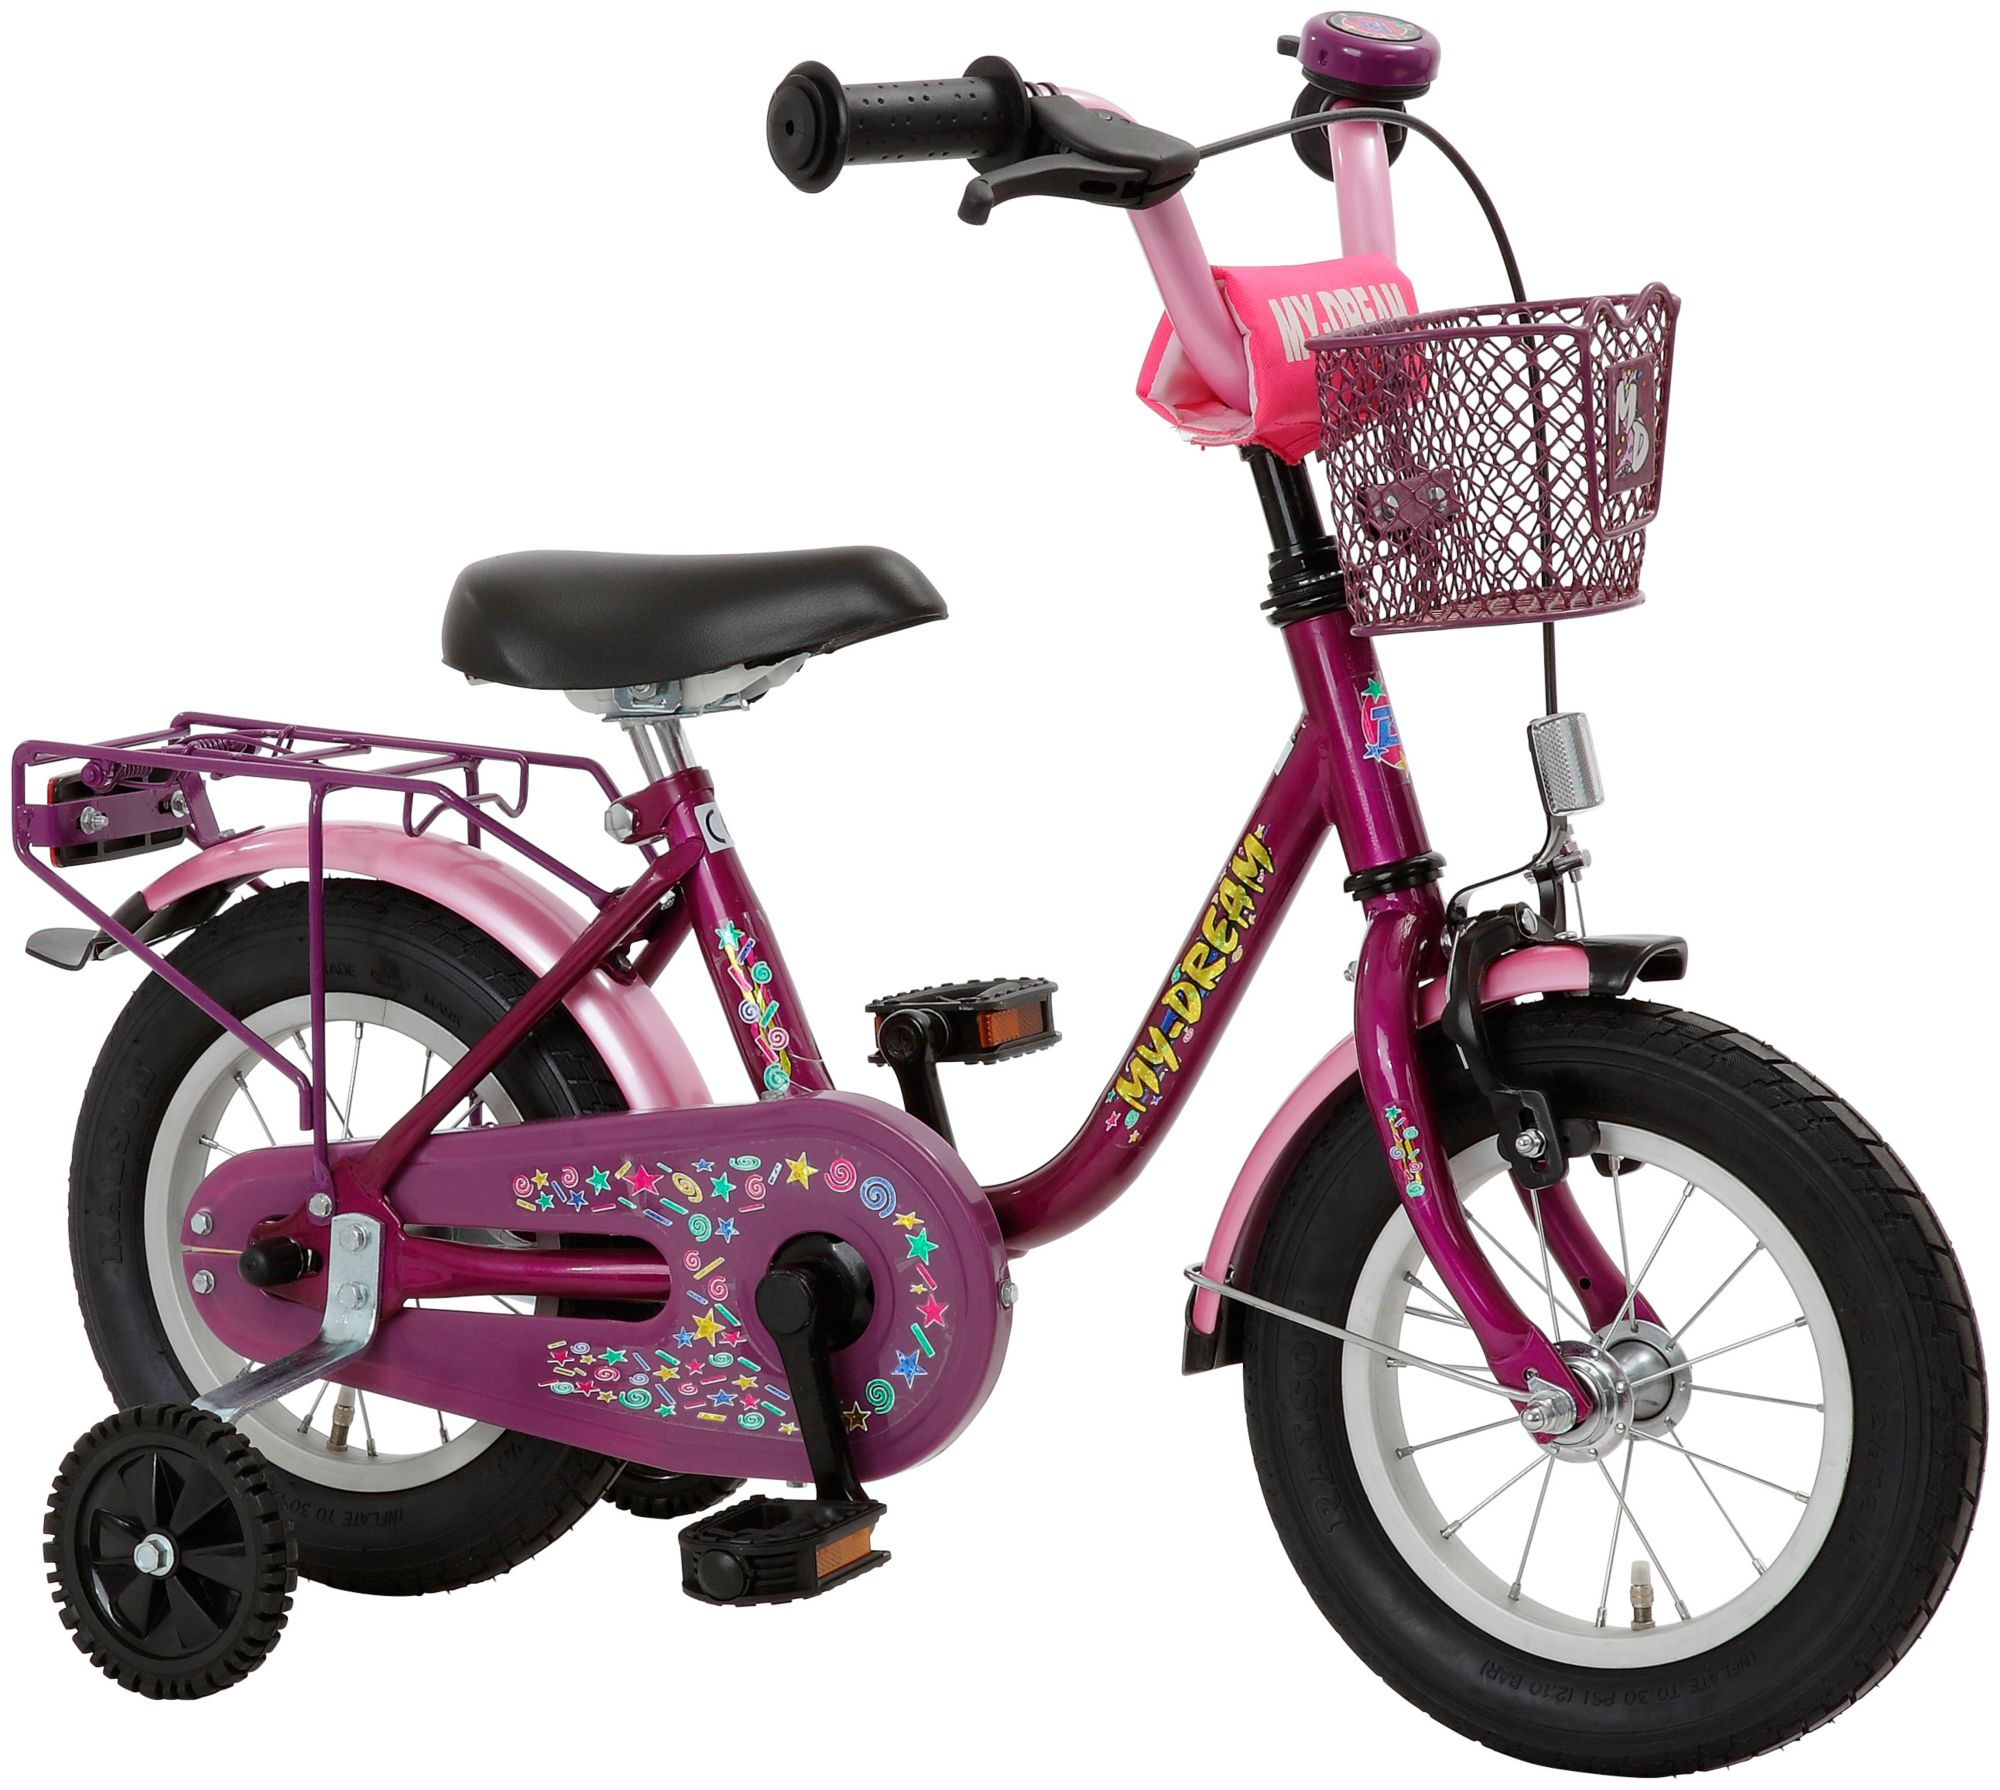 CYCLES4KIDS Cycles4Kids Kinderfahrrad »My Dream, 31,75 cm (12,5 Zoll)«